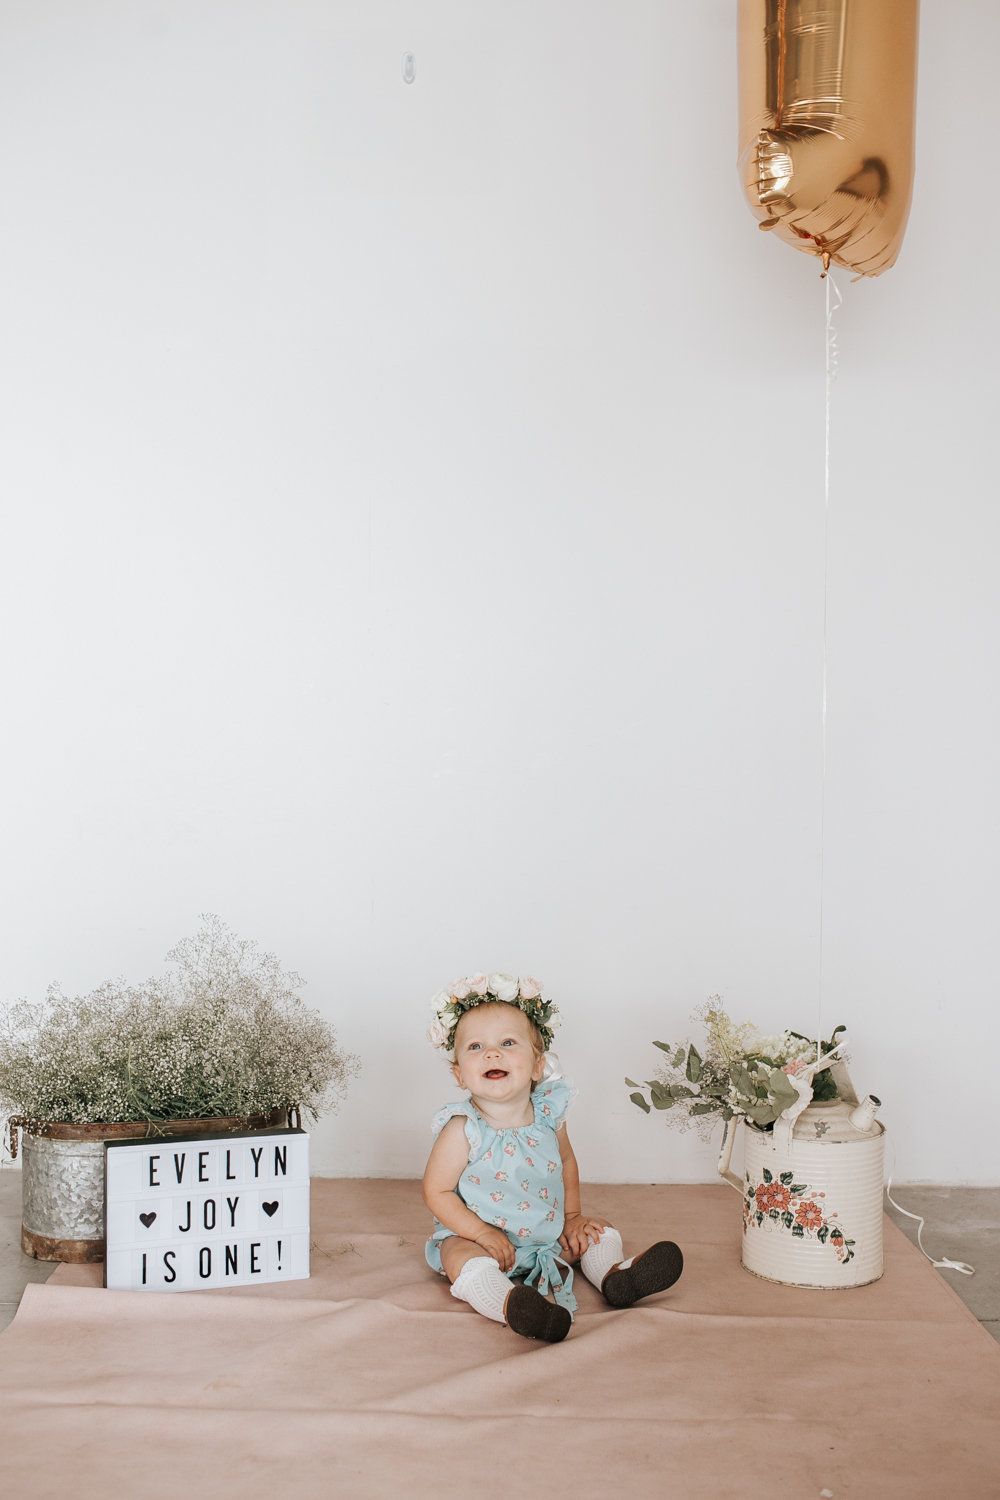 Floral Themed Birthday Party Ideas and Inspiration | DIY Party Decor, Cake Smash and Balloon Garland // Photos by Julie Christine Photography